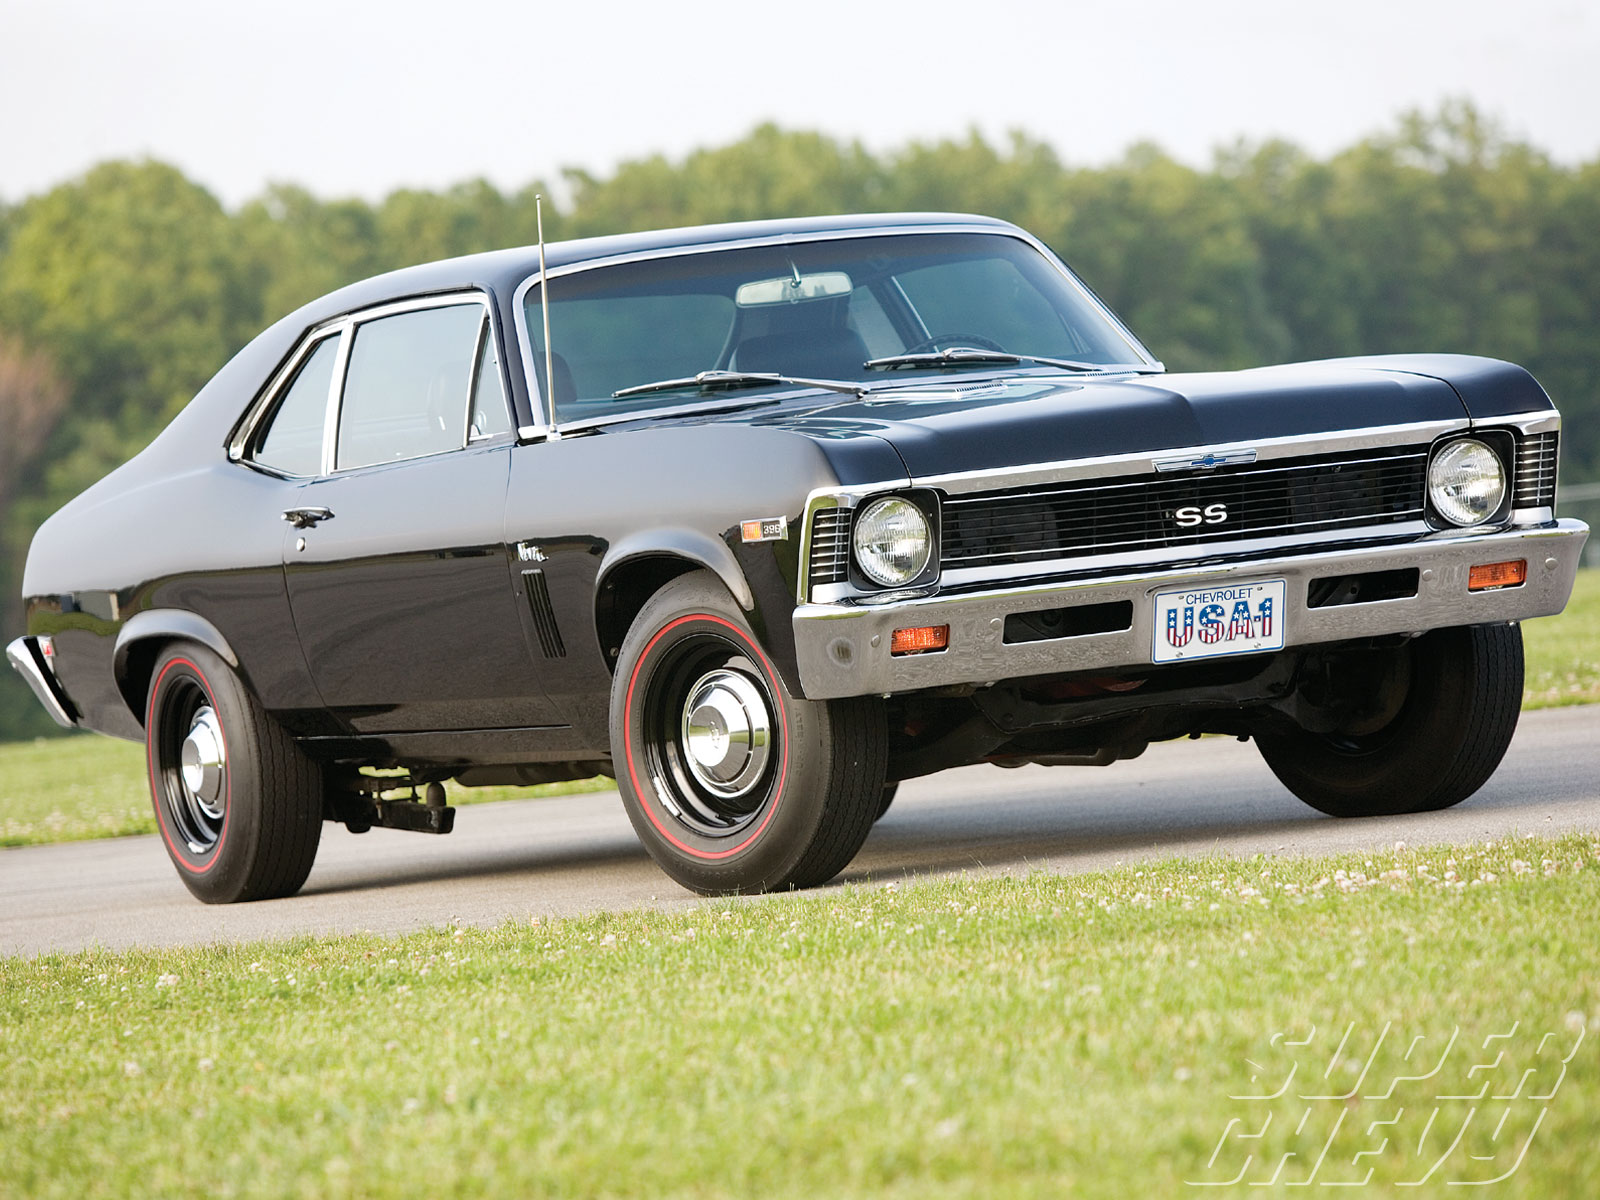 Chevy Nova Is The Best Car